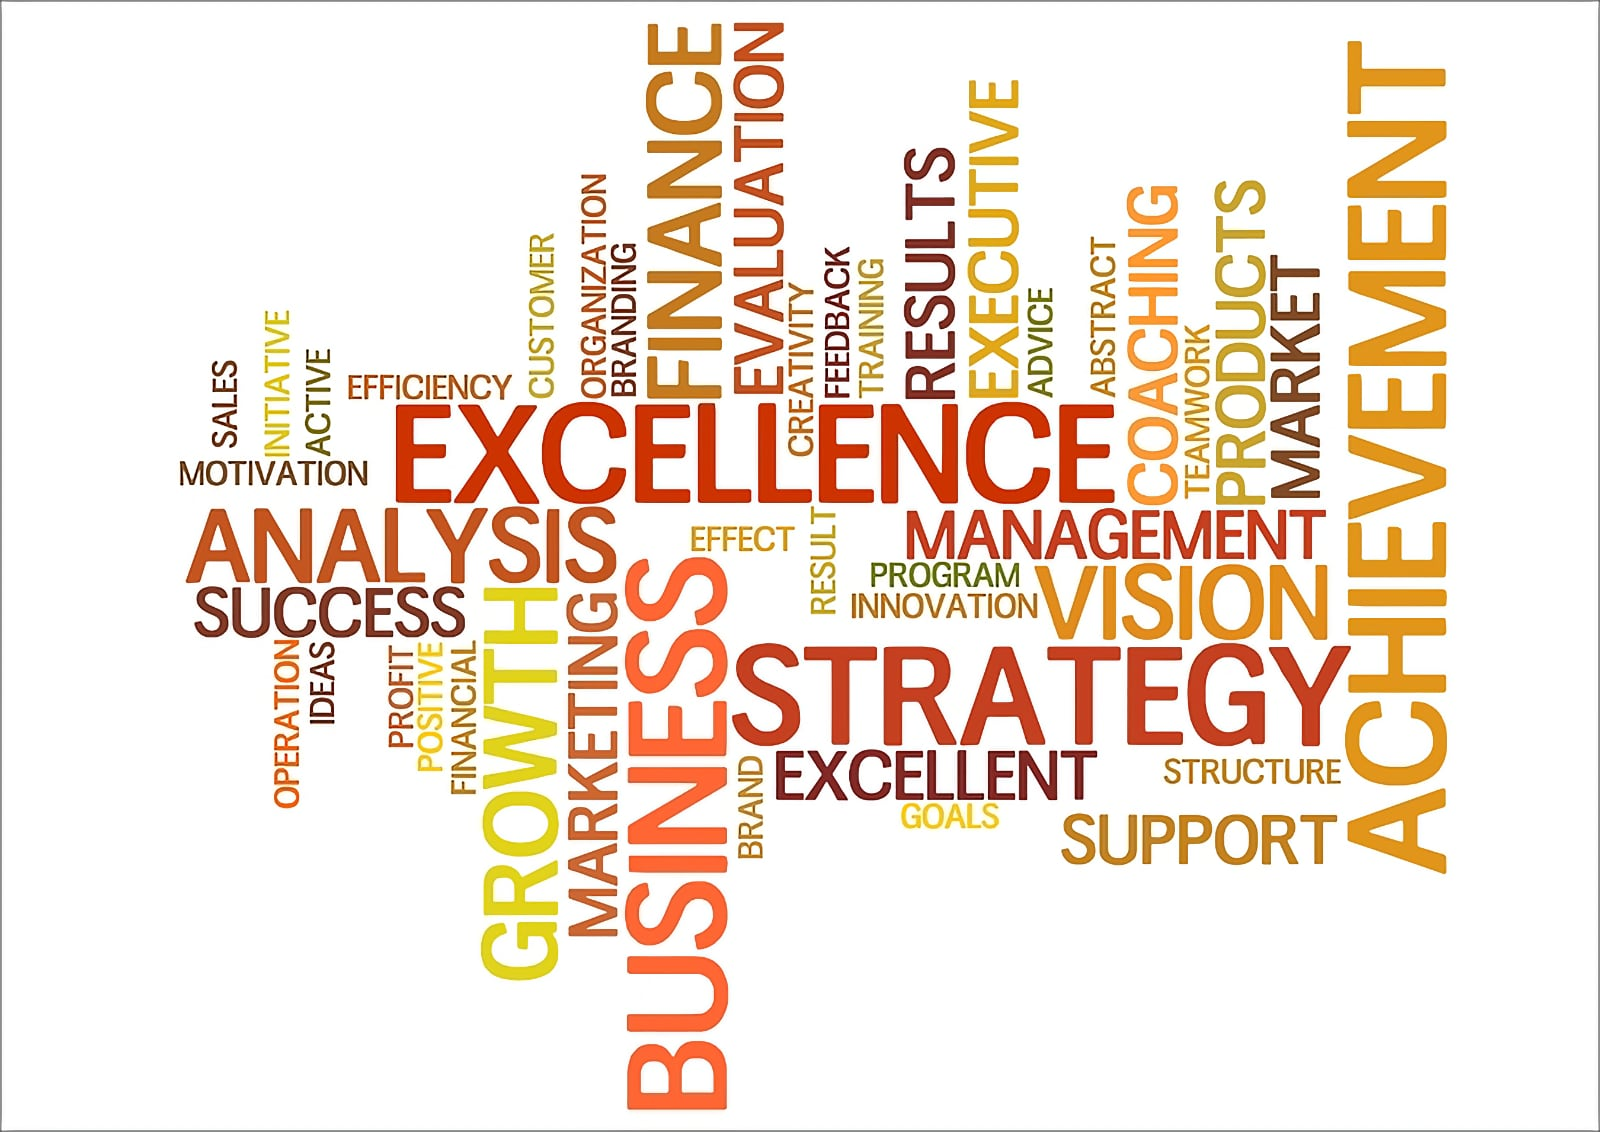 Word cloud image centred on the word Excellence, and including a range of related words and phrases